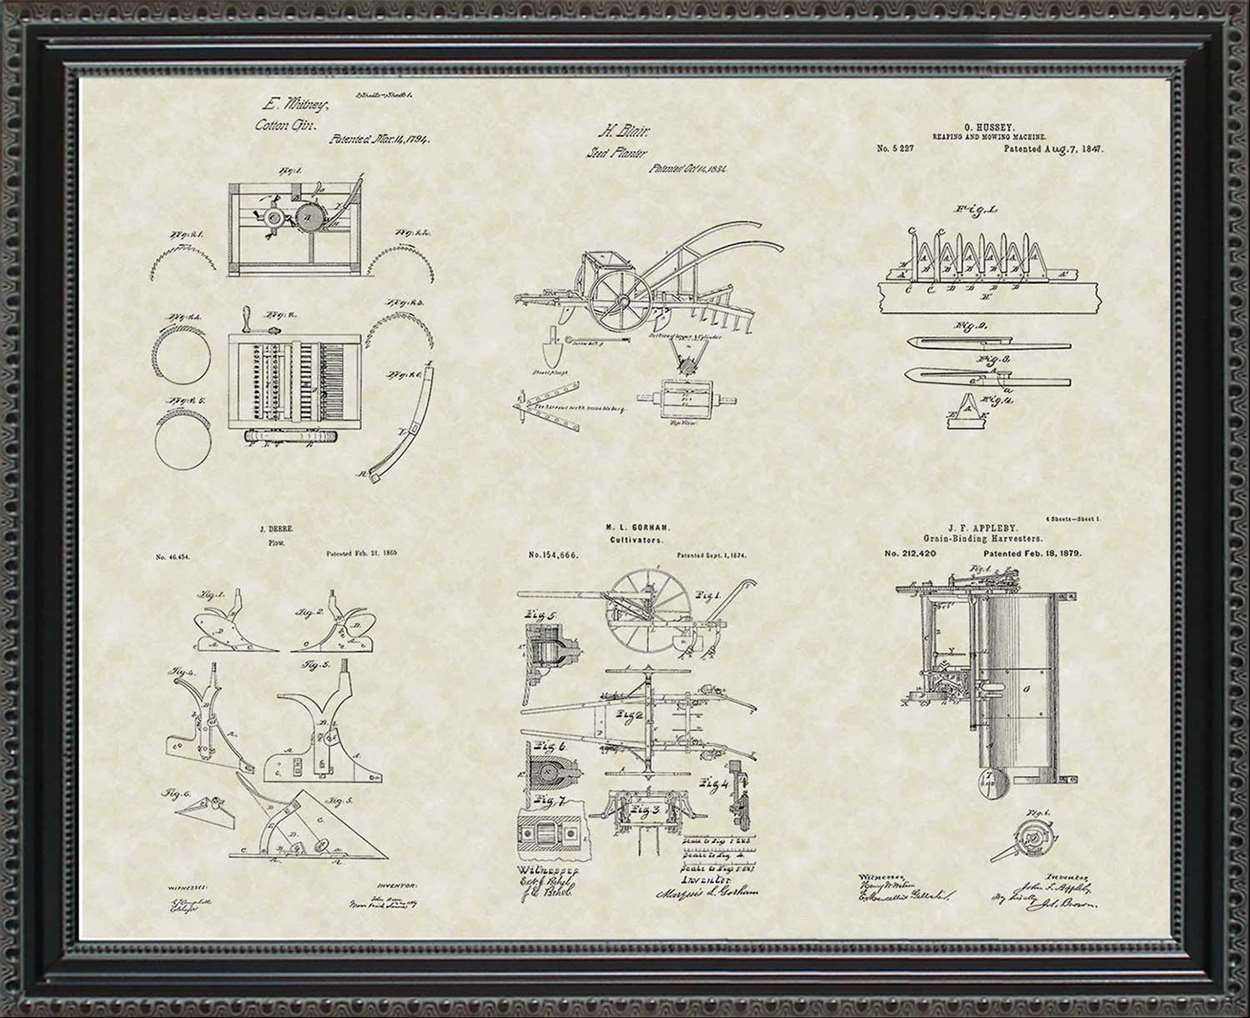 Farming Patents, 20x24